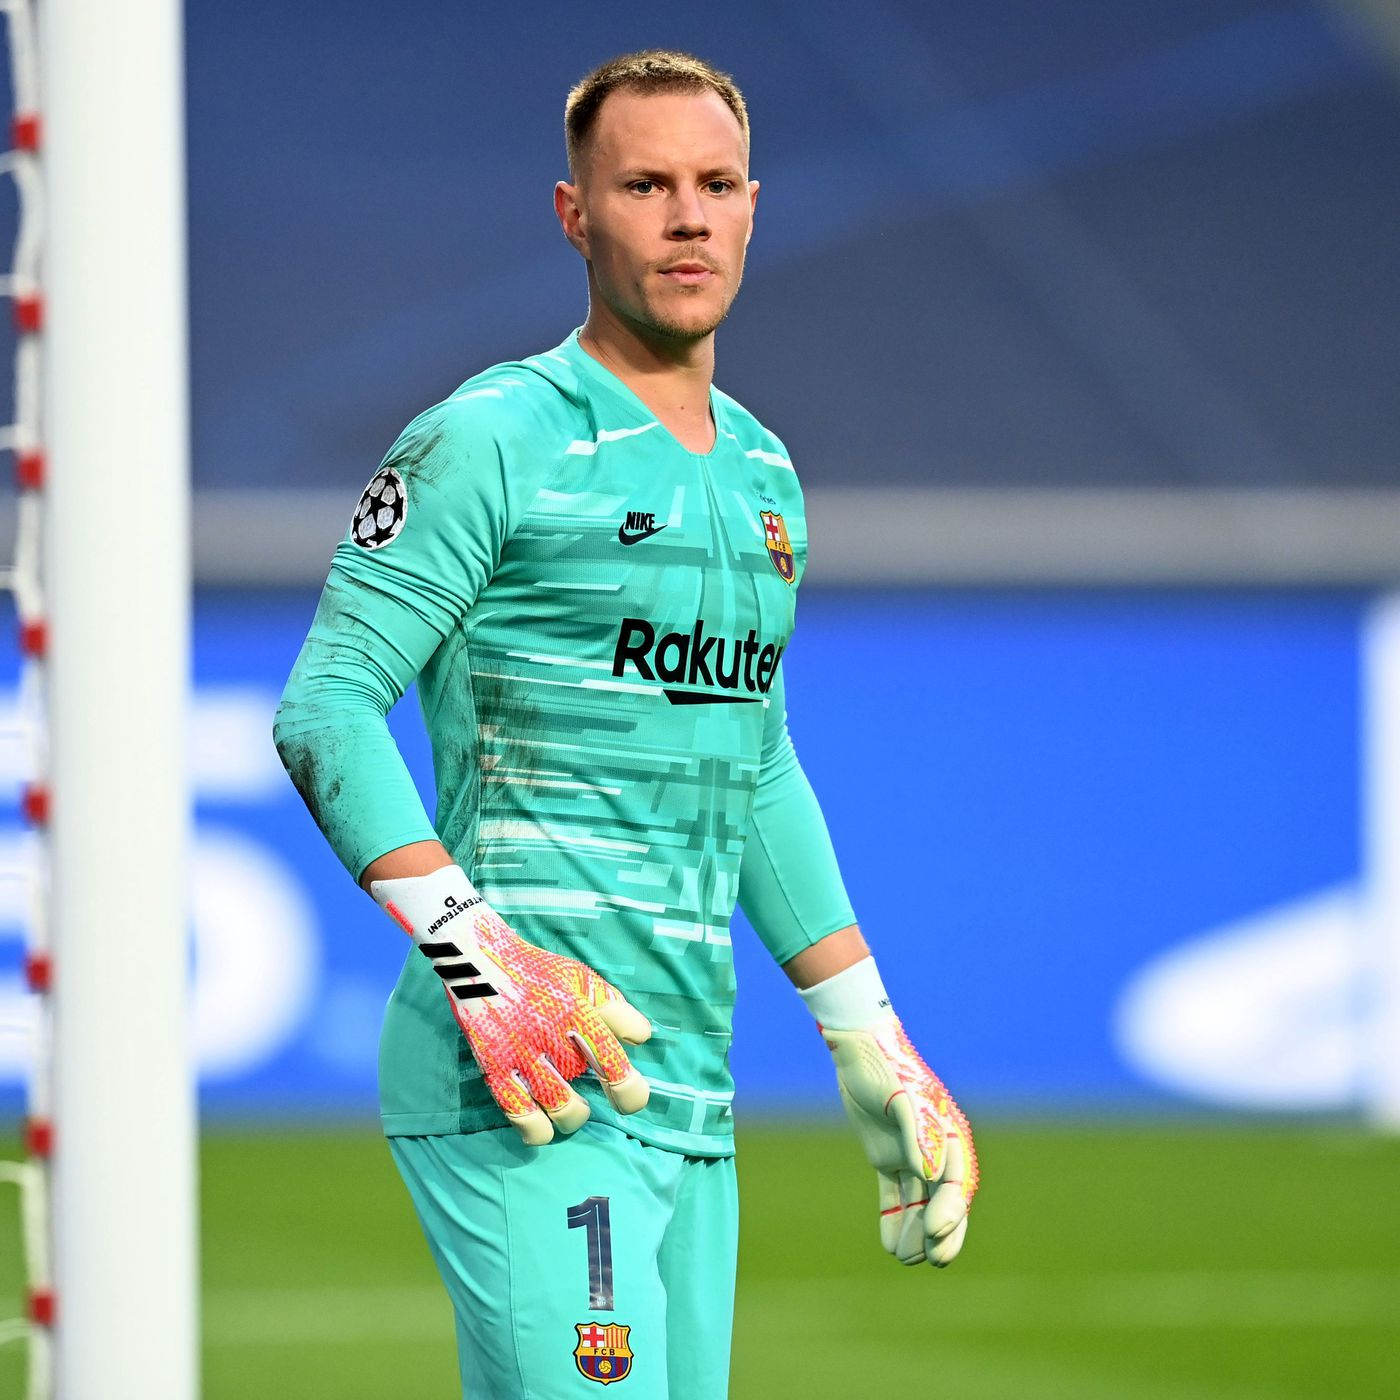 Fc Barcelona News 12 October 2020 Barca Futsal Wins Champions League Ter Stegen Wants To Return For El Clasico Barca Blaugranes